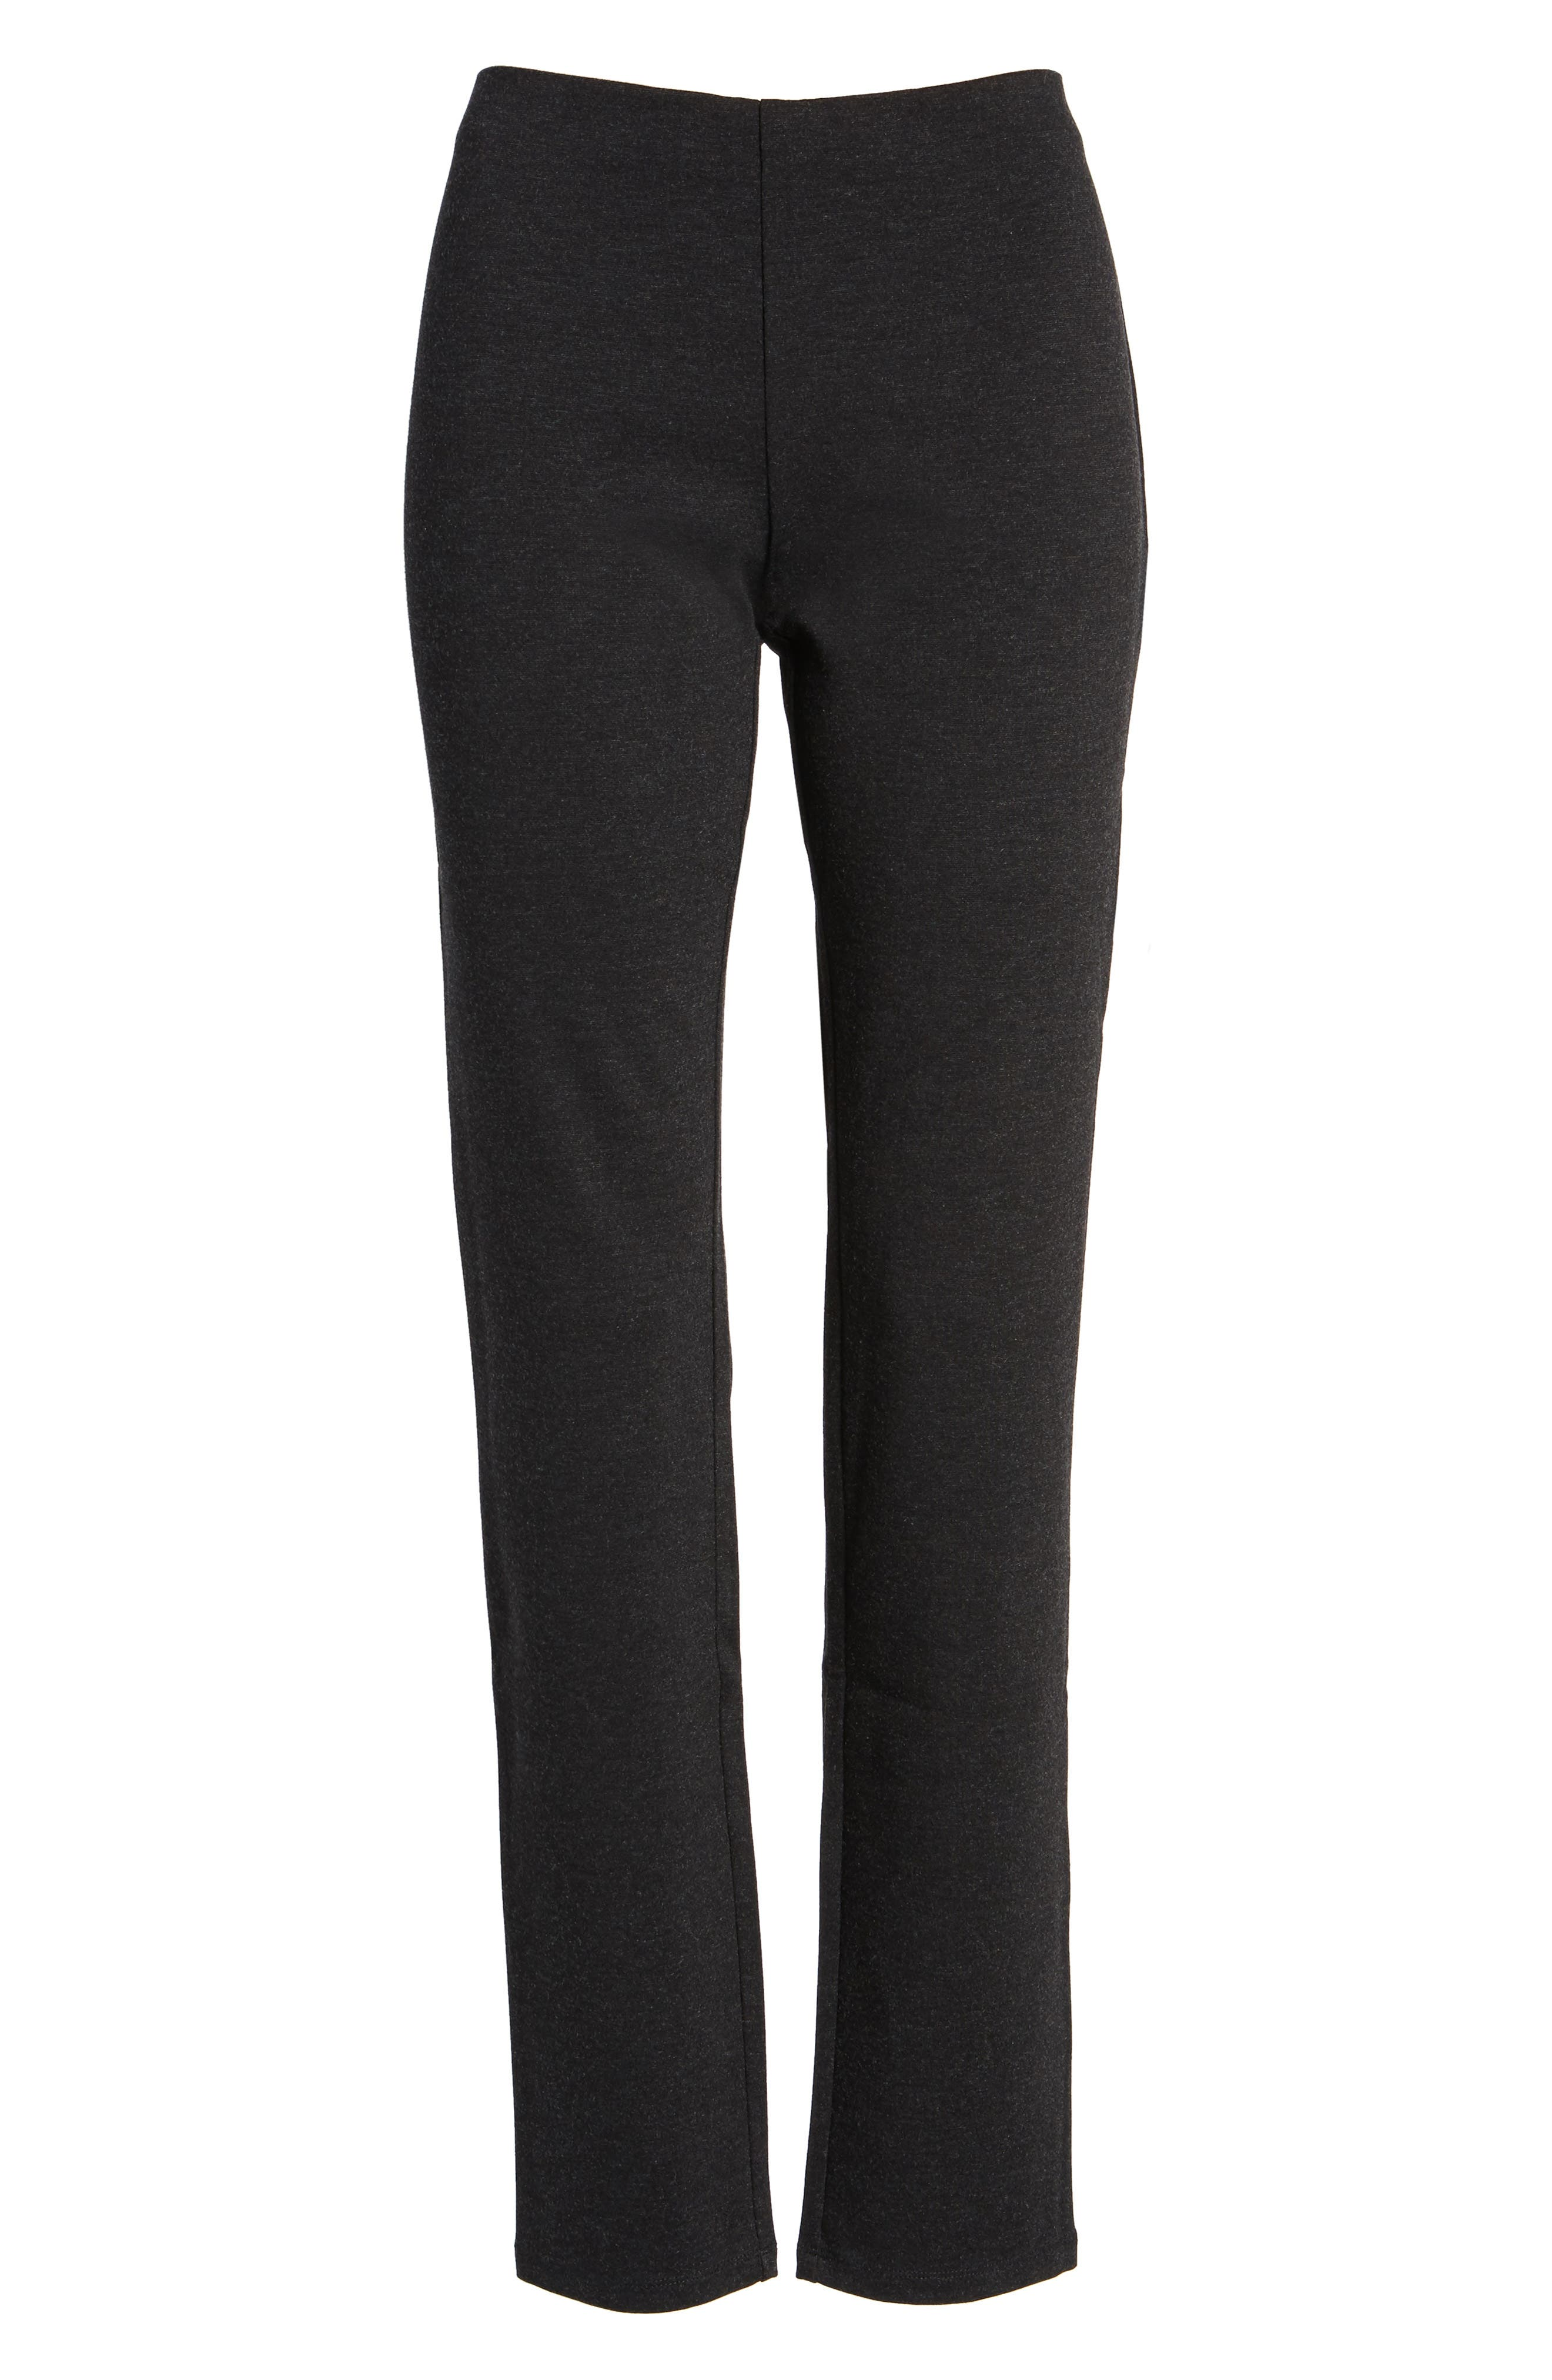 petite women's eileen fisher skinny ponte pants, size petite p - grey